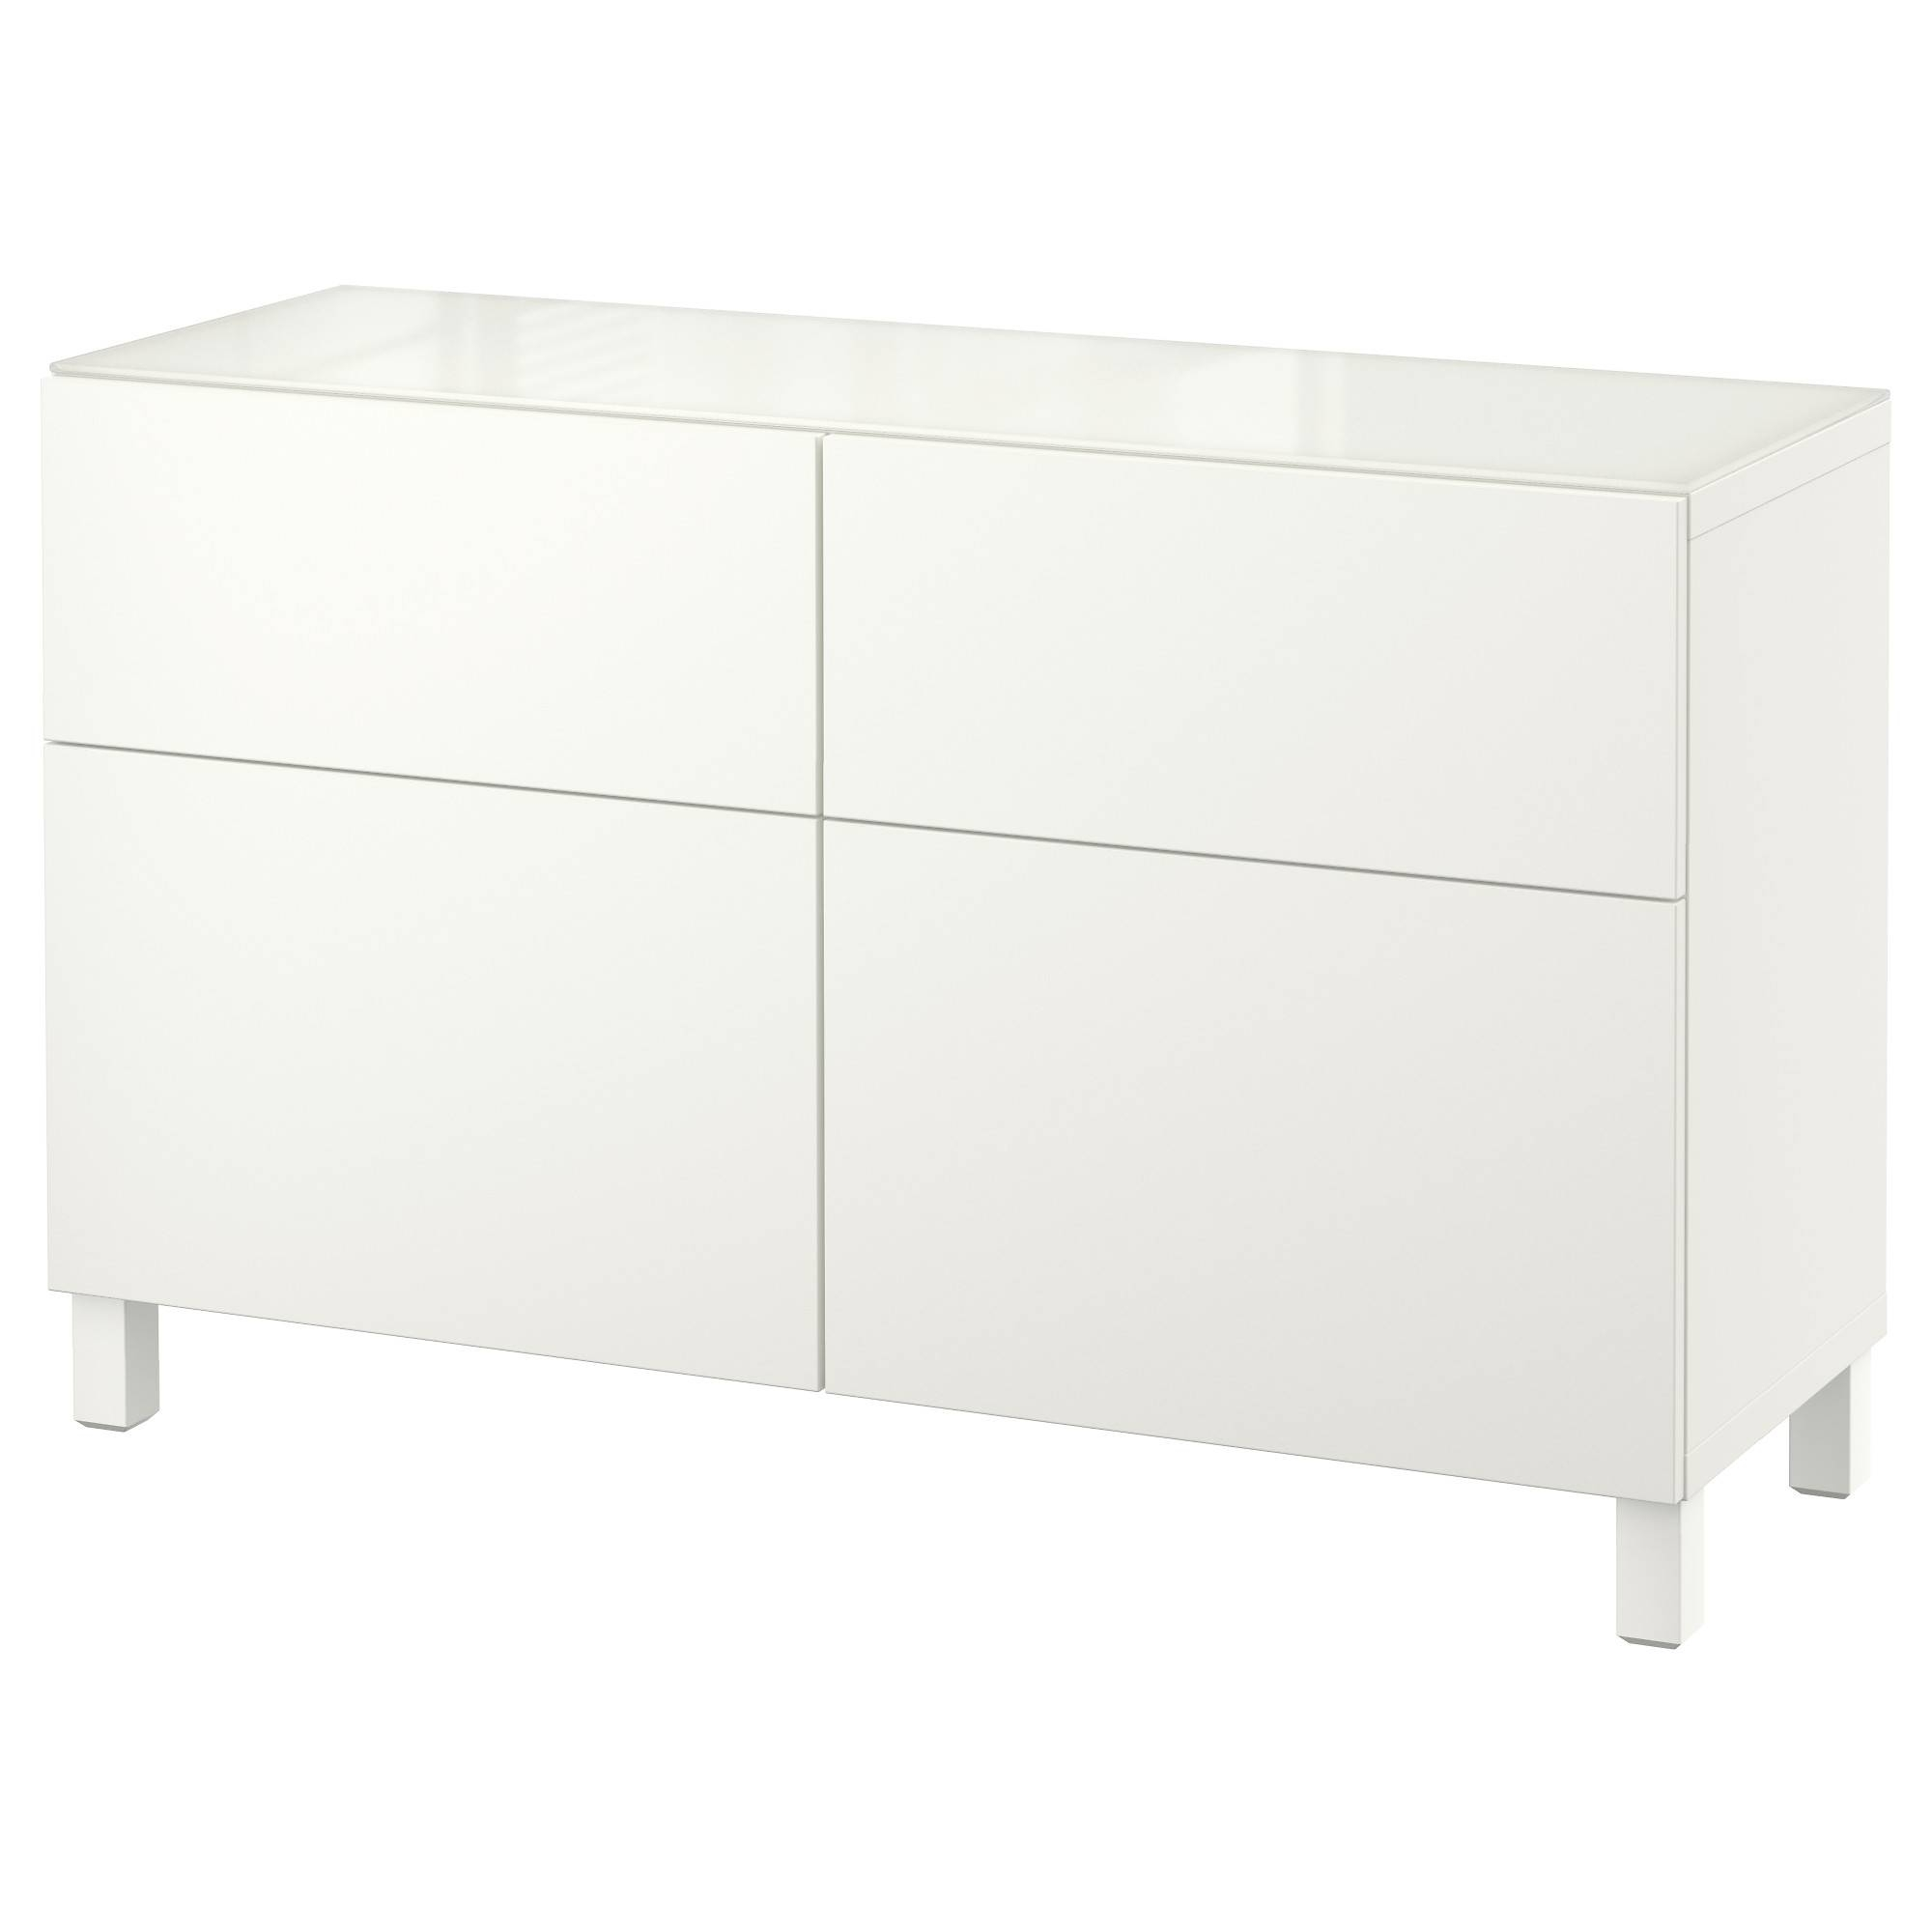 15 inspirations of ikea besta sideboards for White gloss sideboards at ikea